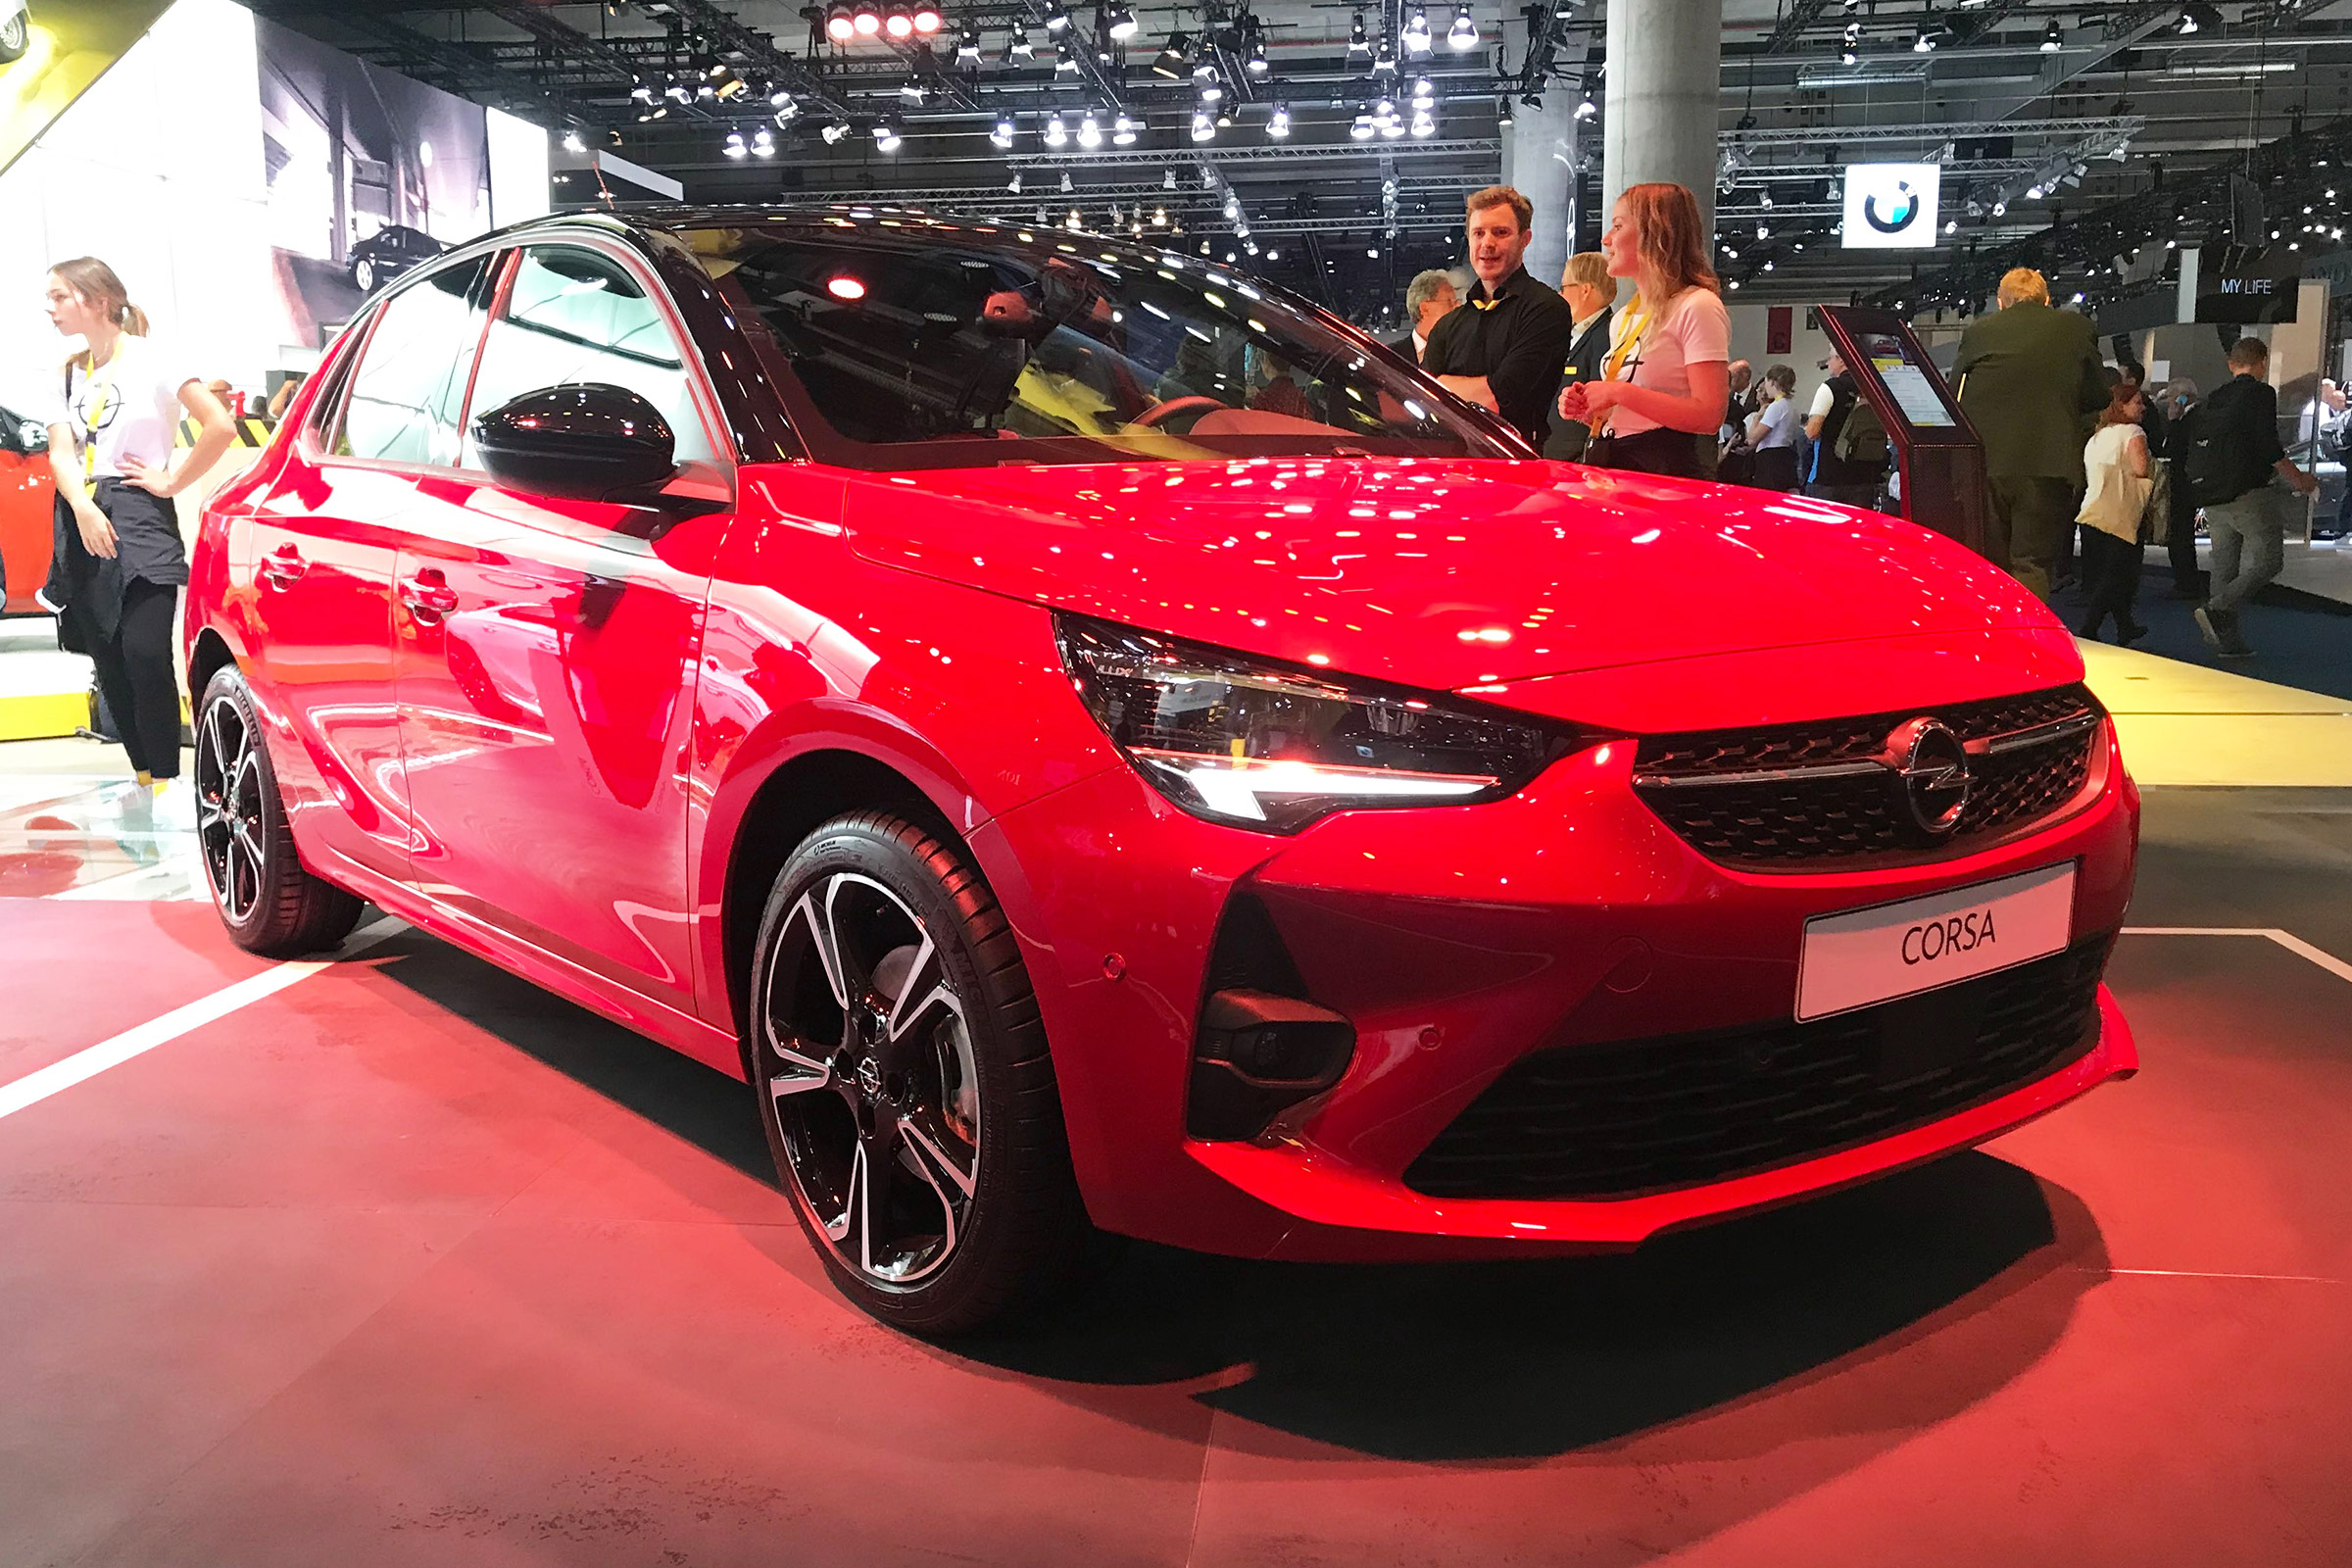 2020 Vauxhall Corsa VXR Concept and Review